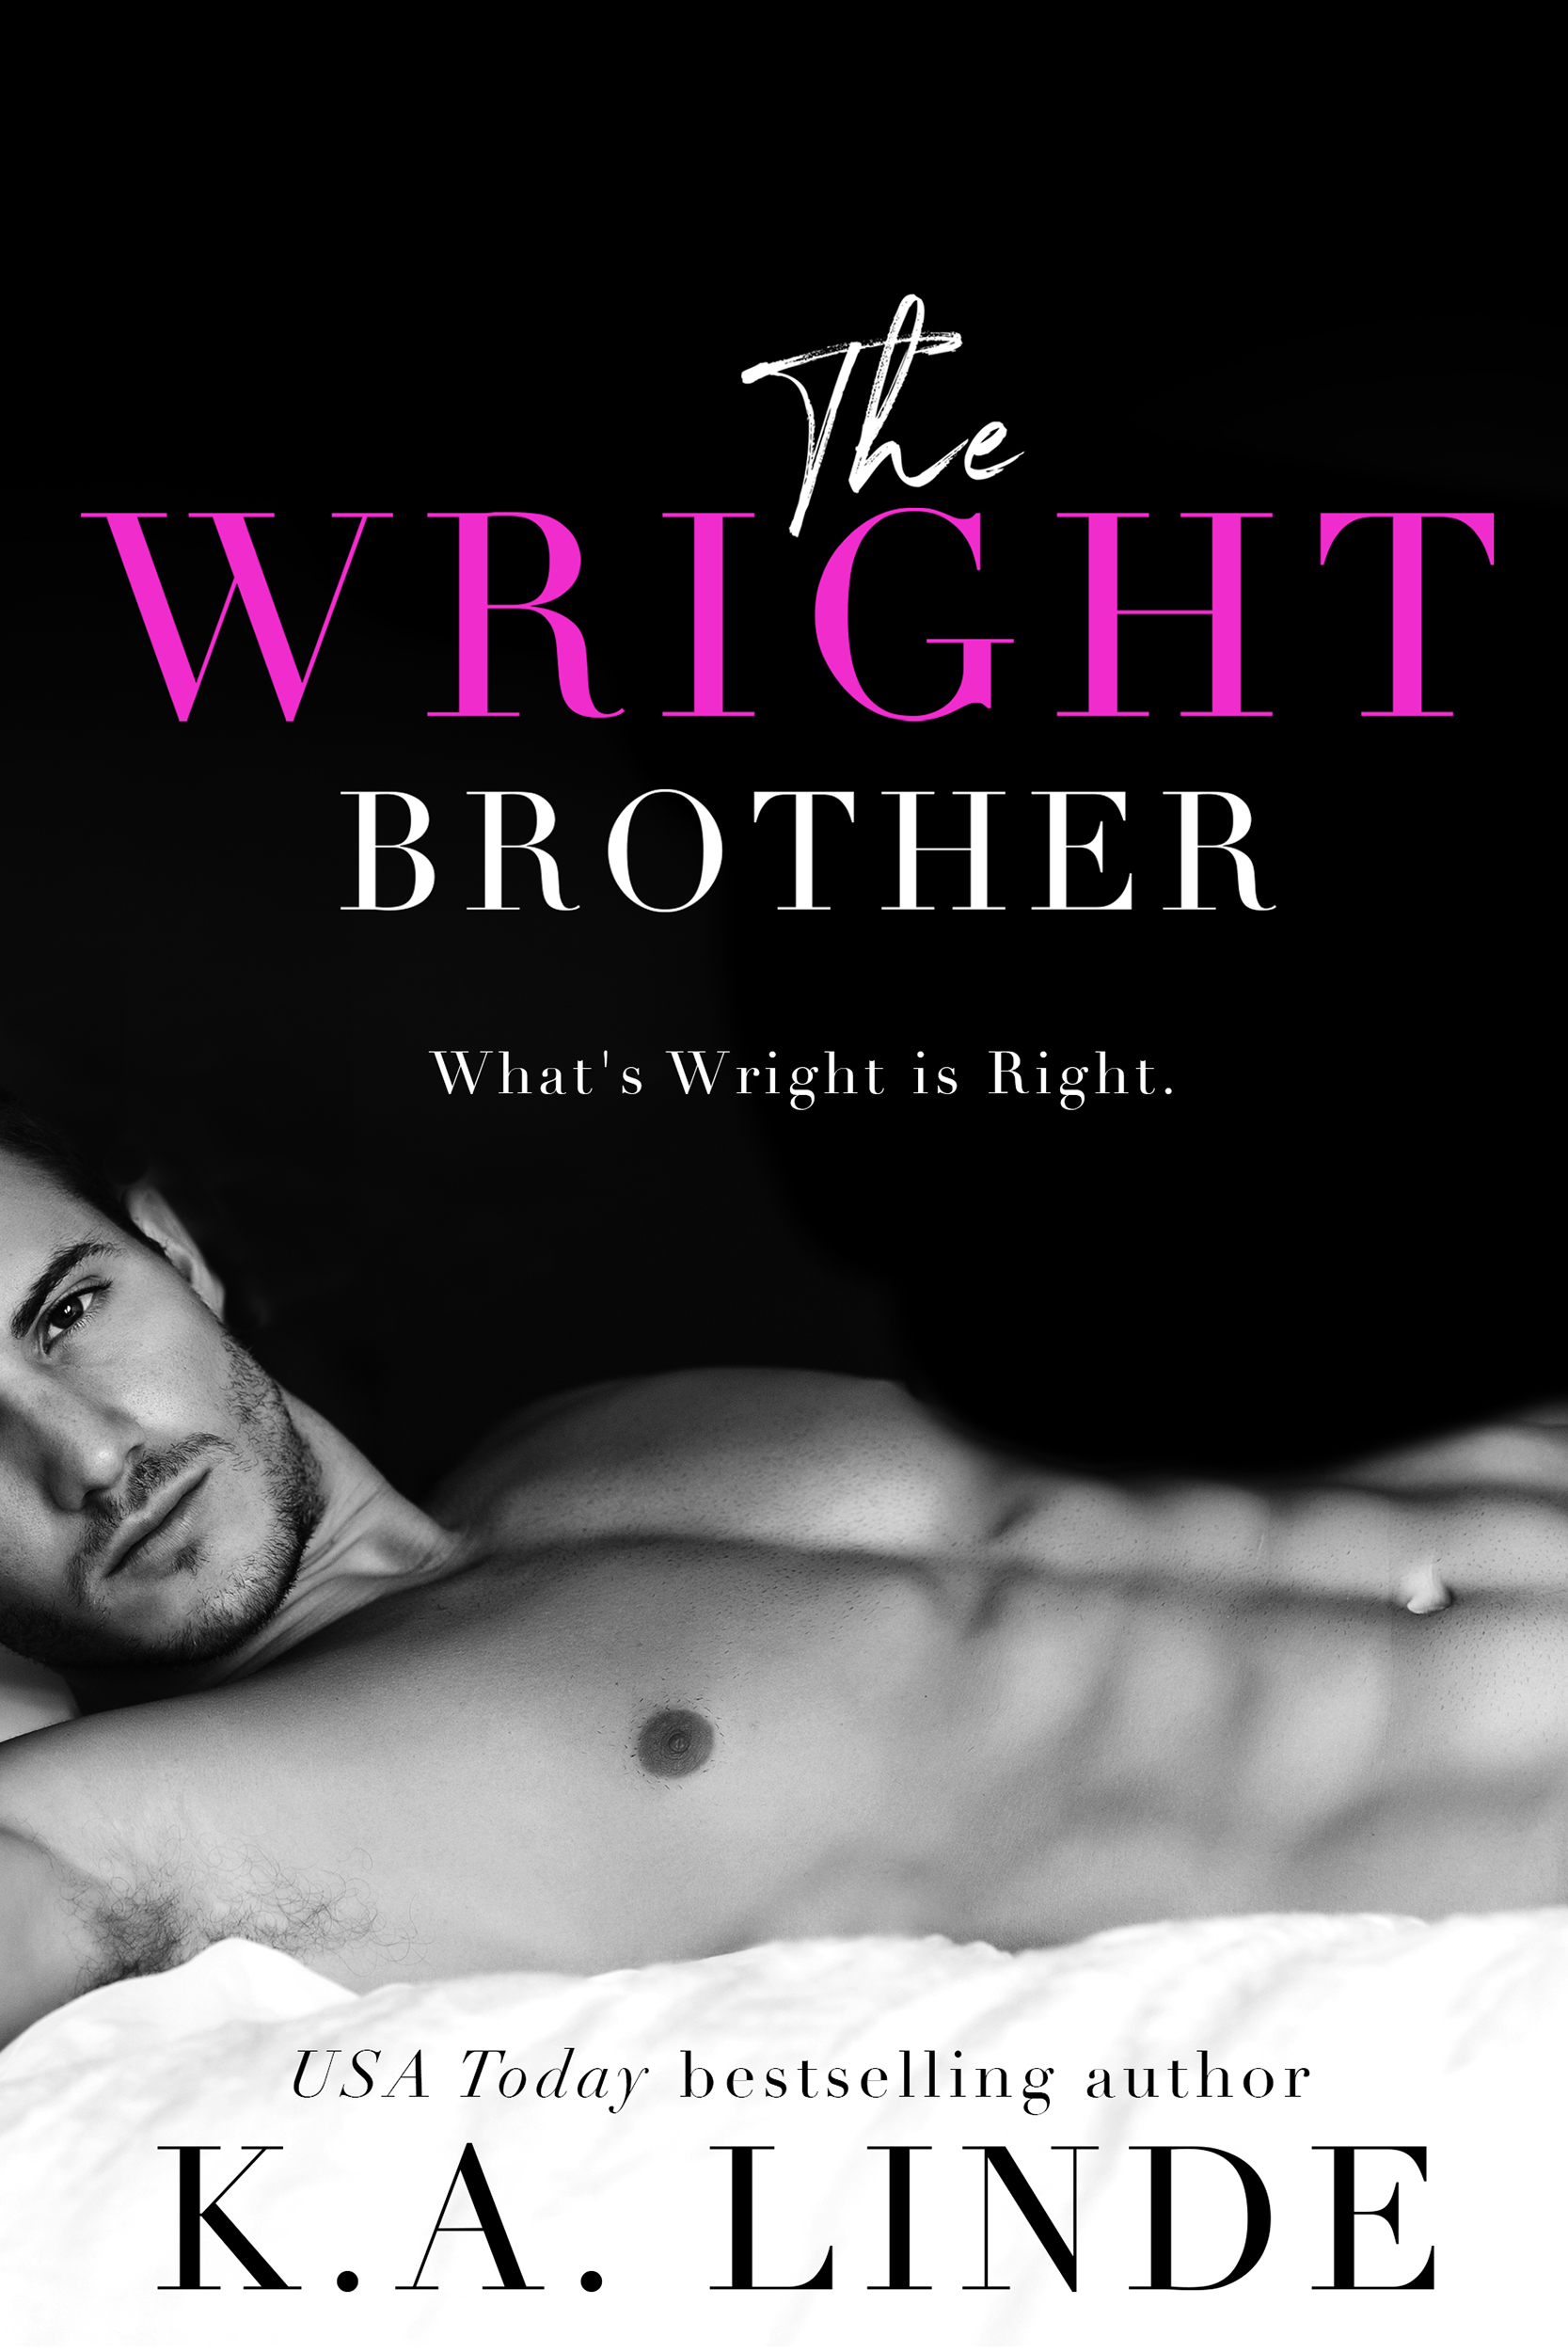 THE WRIGHT BROTHER Cover – K.A. Linde